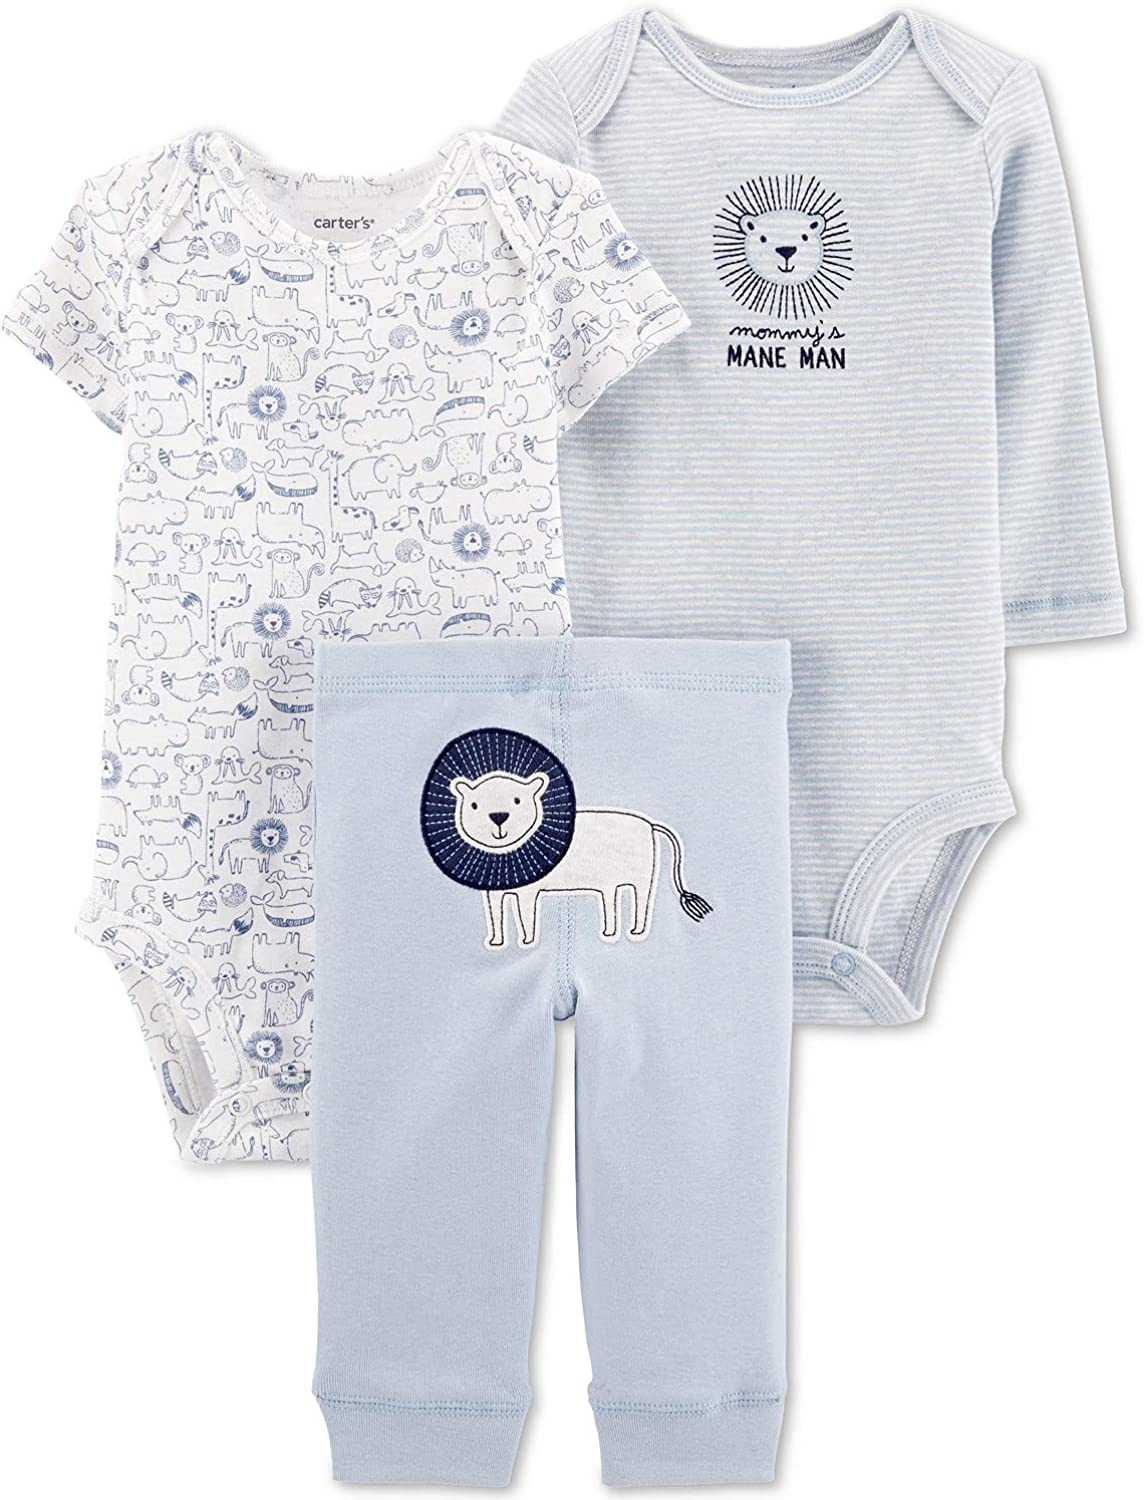 Carter's Baby Boys 3-Piece Lion Little Character Set Size 24 Months Blue White